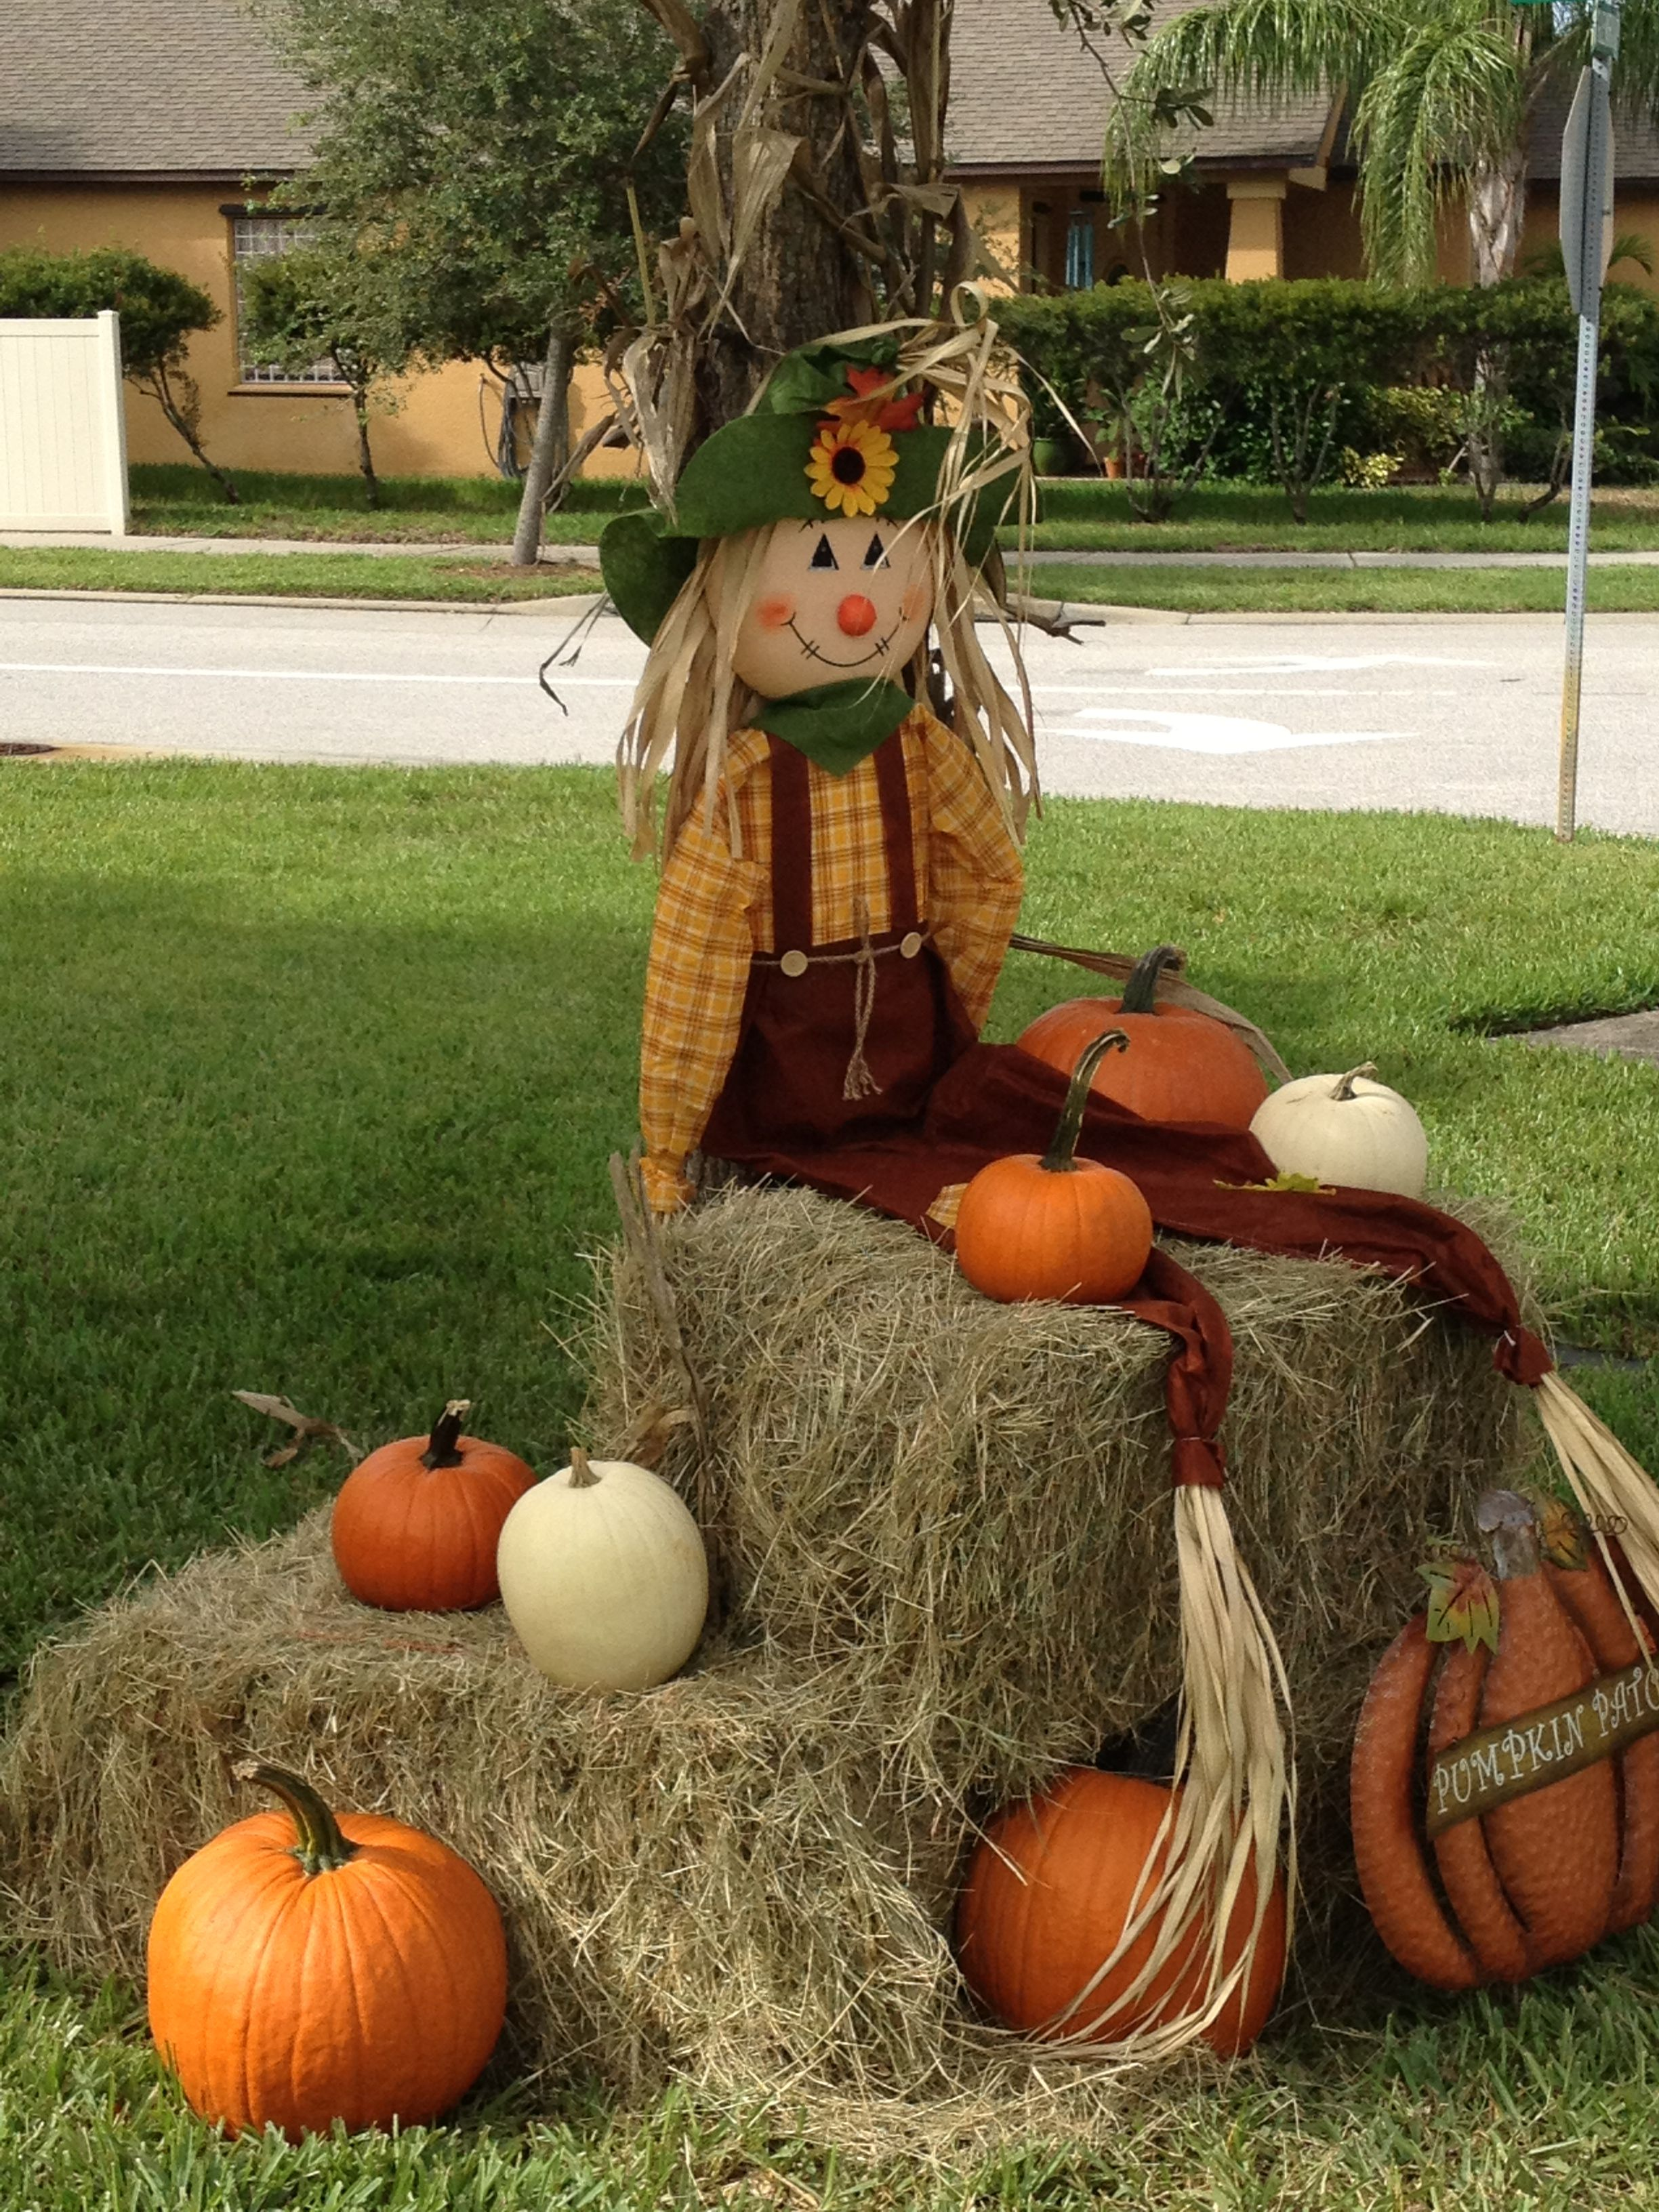 Scarecrow Pumpkin And Hay Bales Cute Fall Display And Photo Op